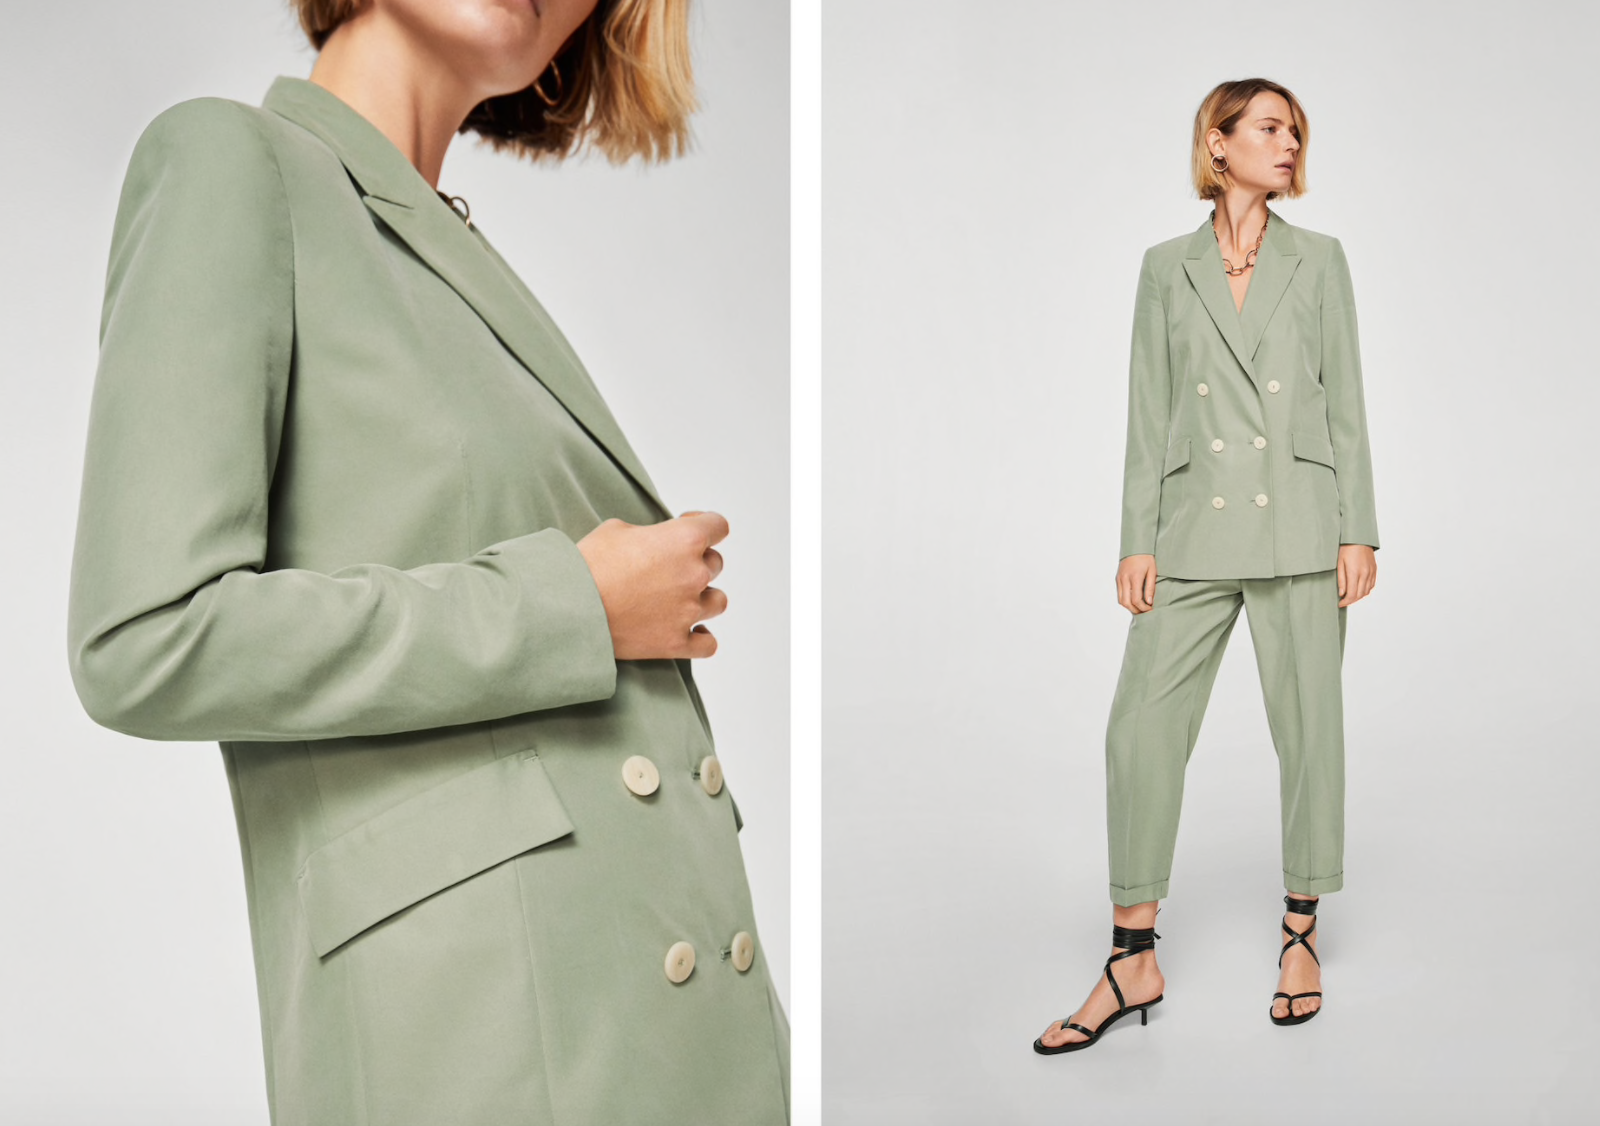 MANGO - Jacket £69.99 / Trousers £35.99